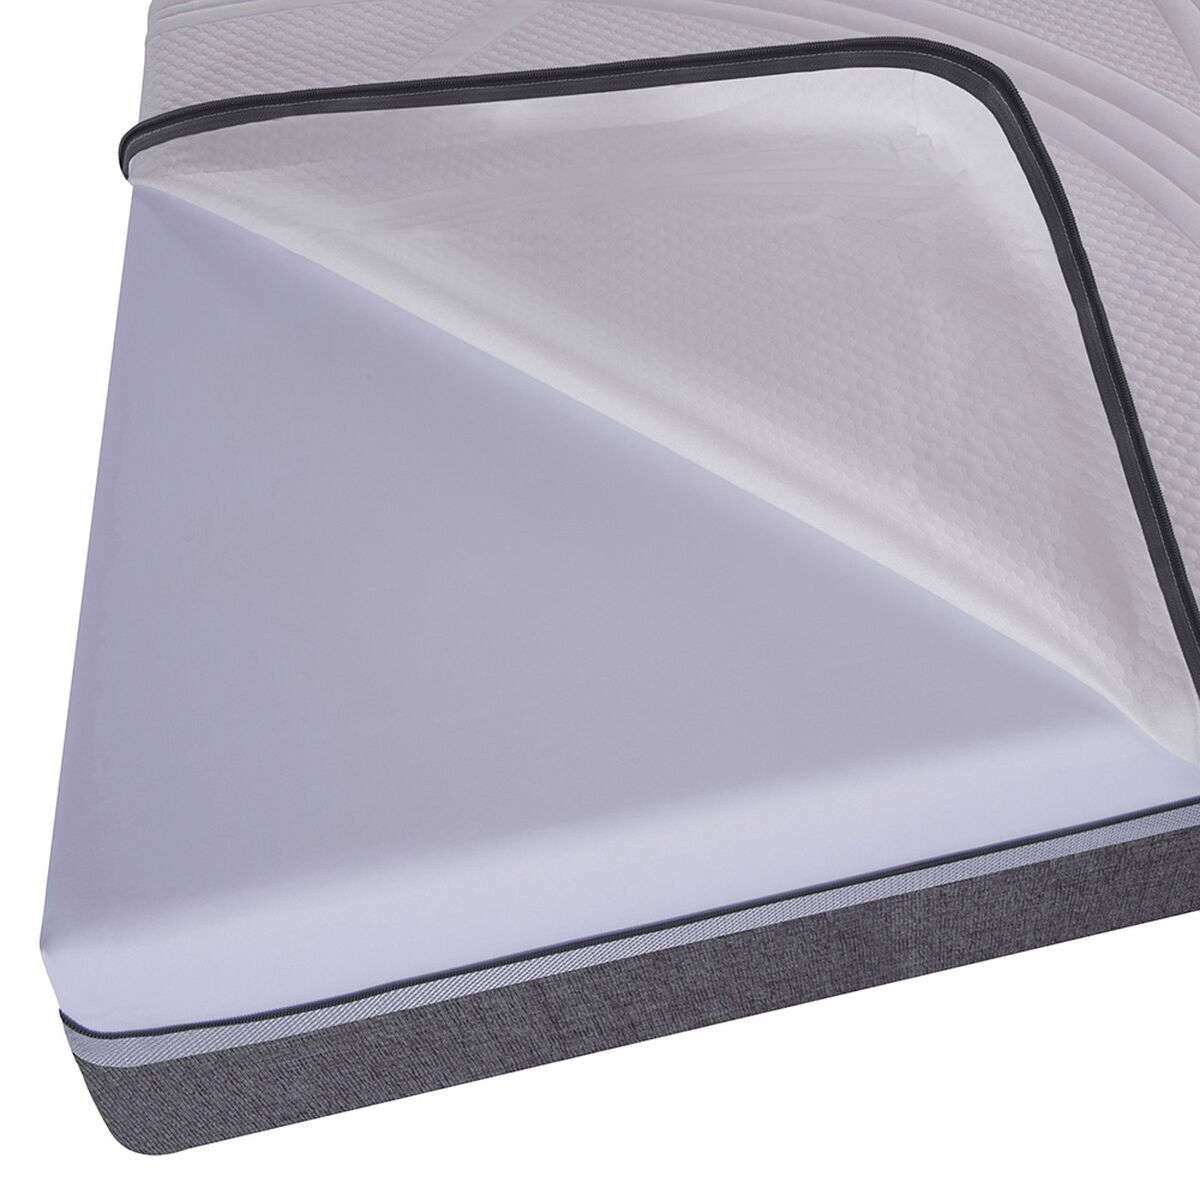 Cama Europea Ortopedic Advance King Base Dividida + Respaldo Eufrates